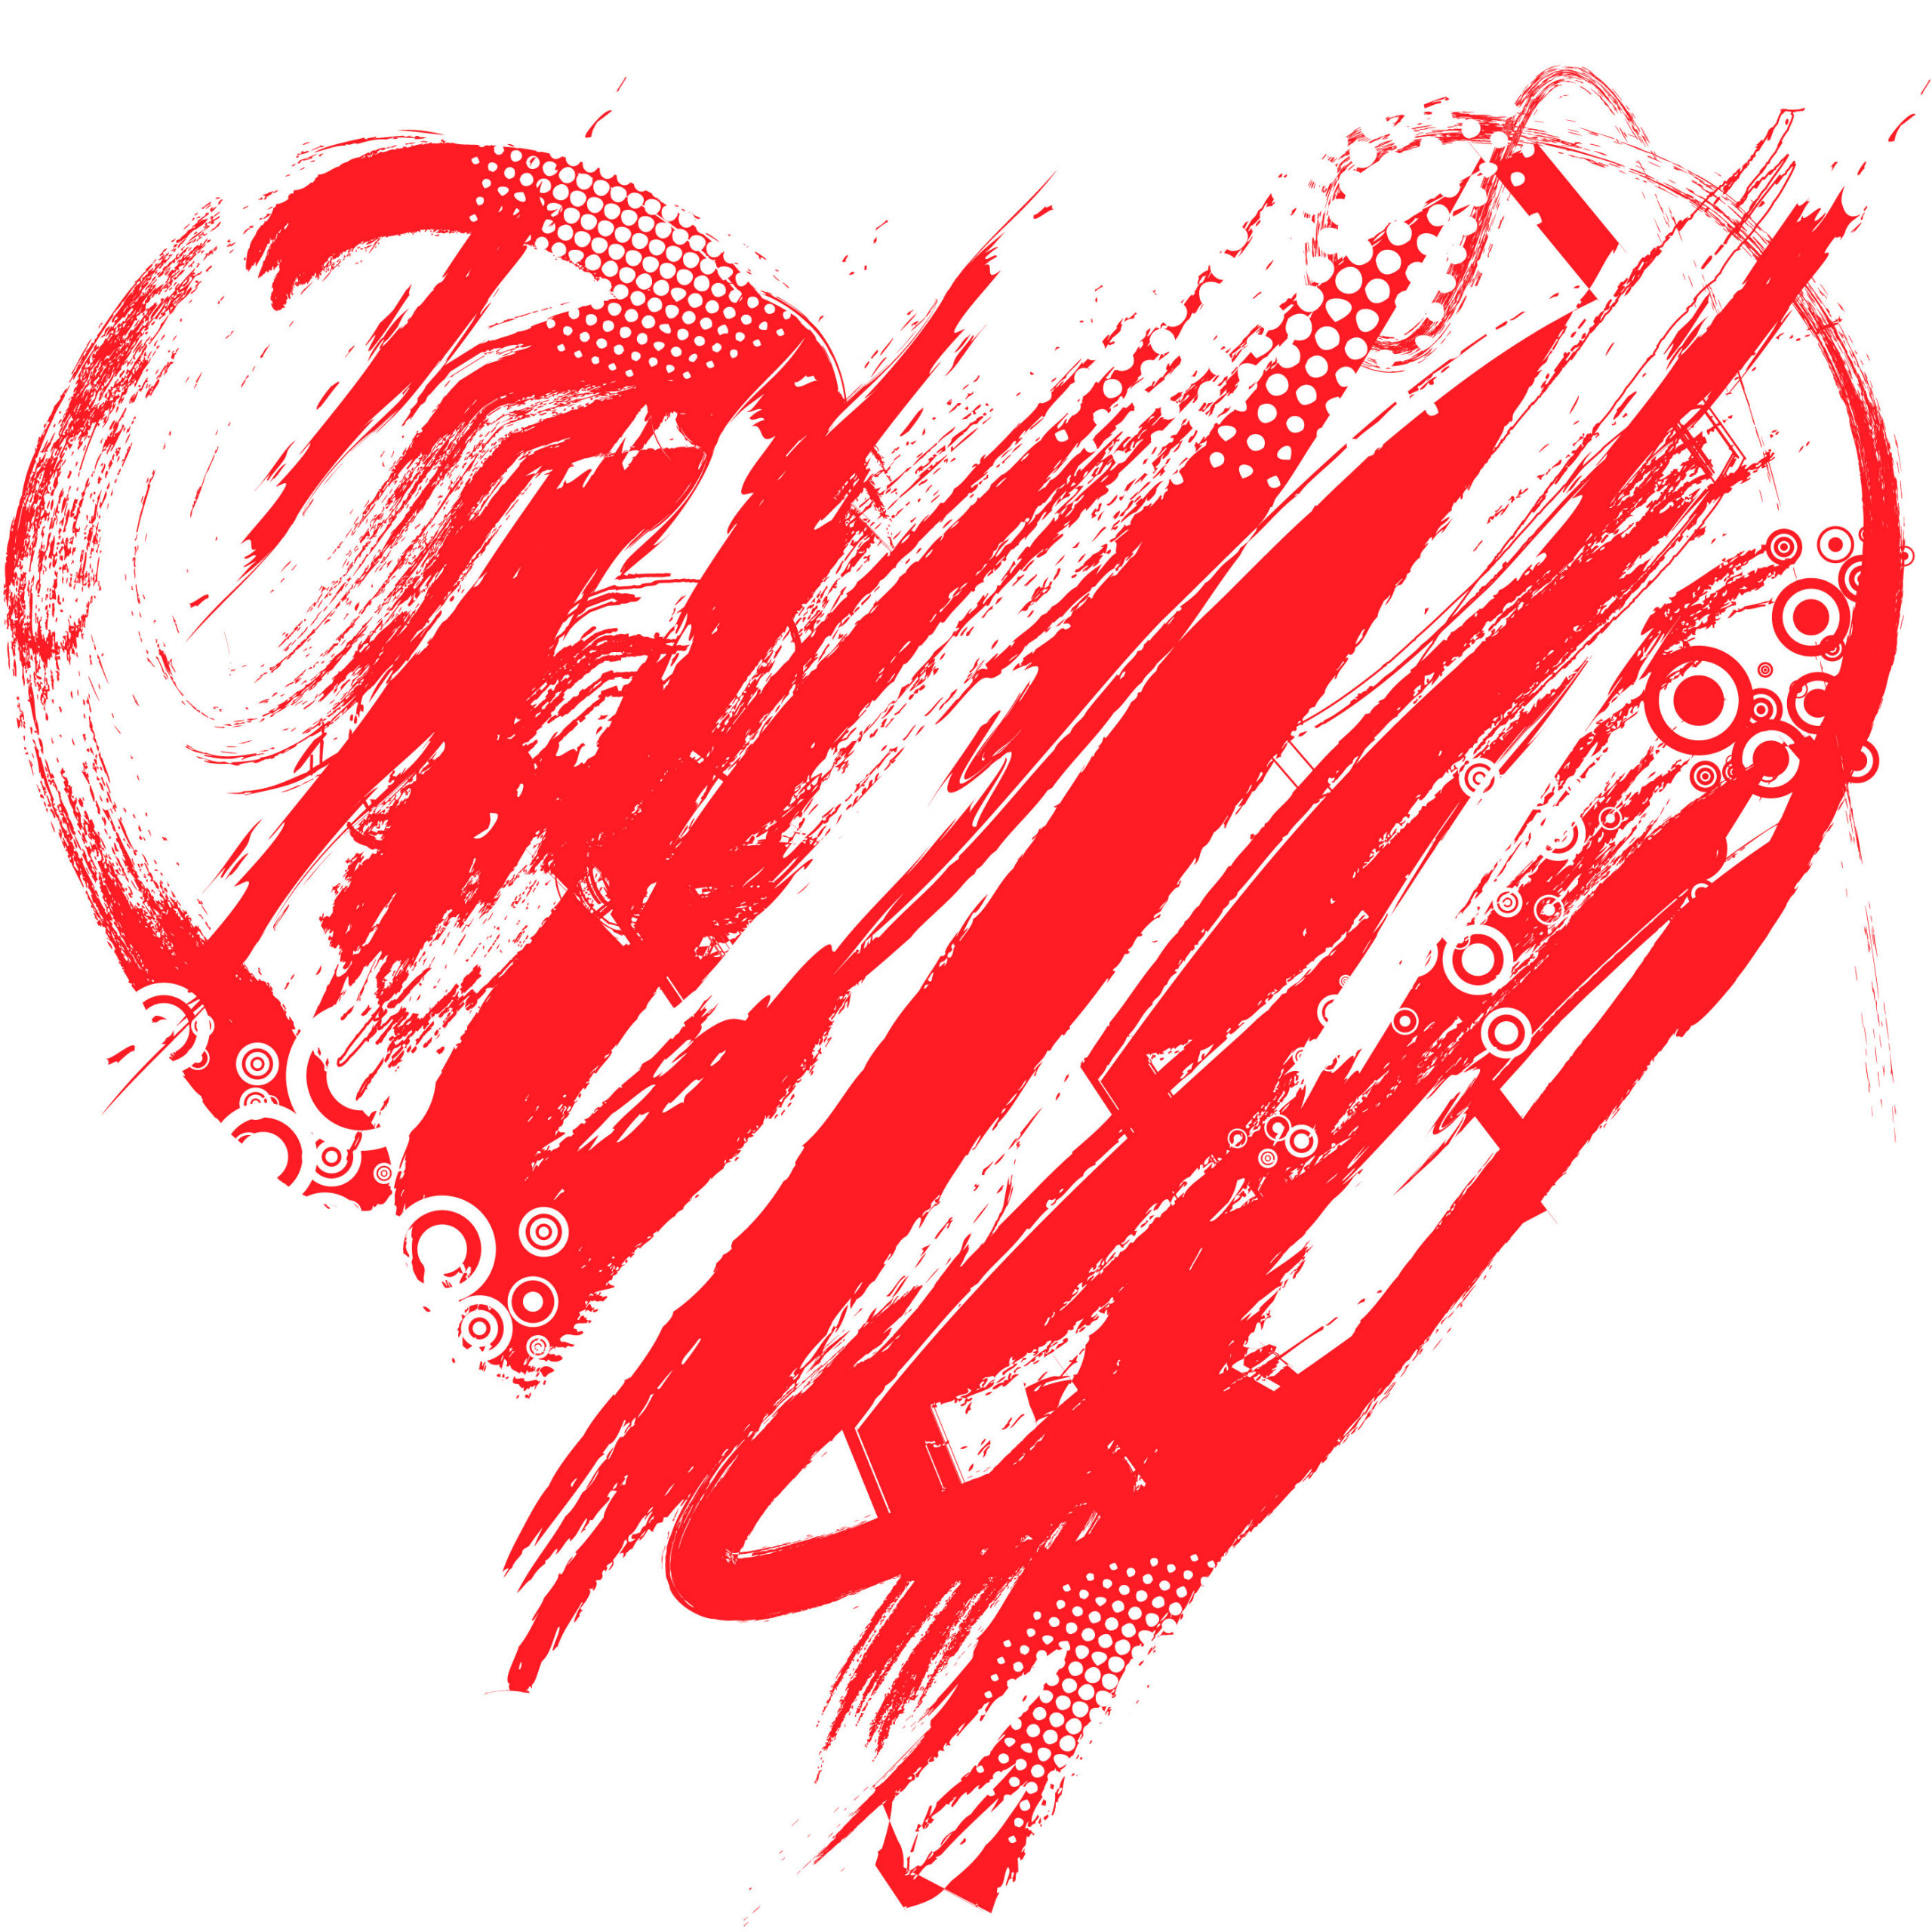 oxiwbb valentines day heart picture scribbled heart clipart red